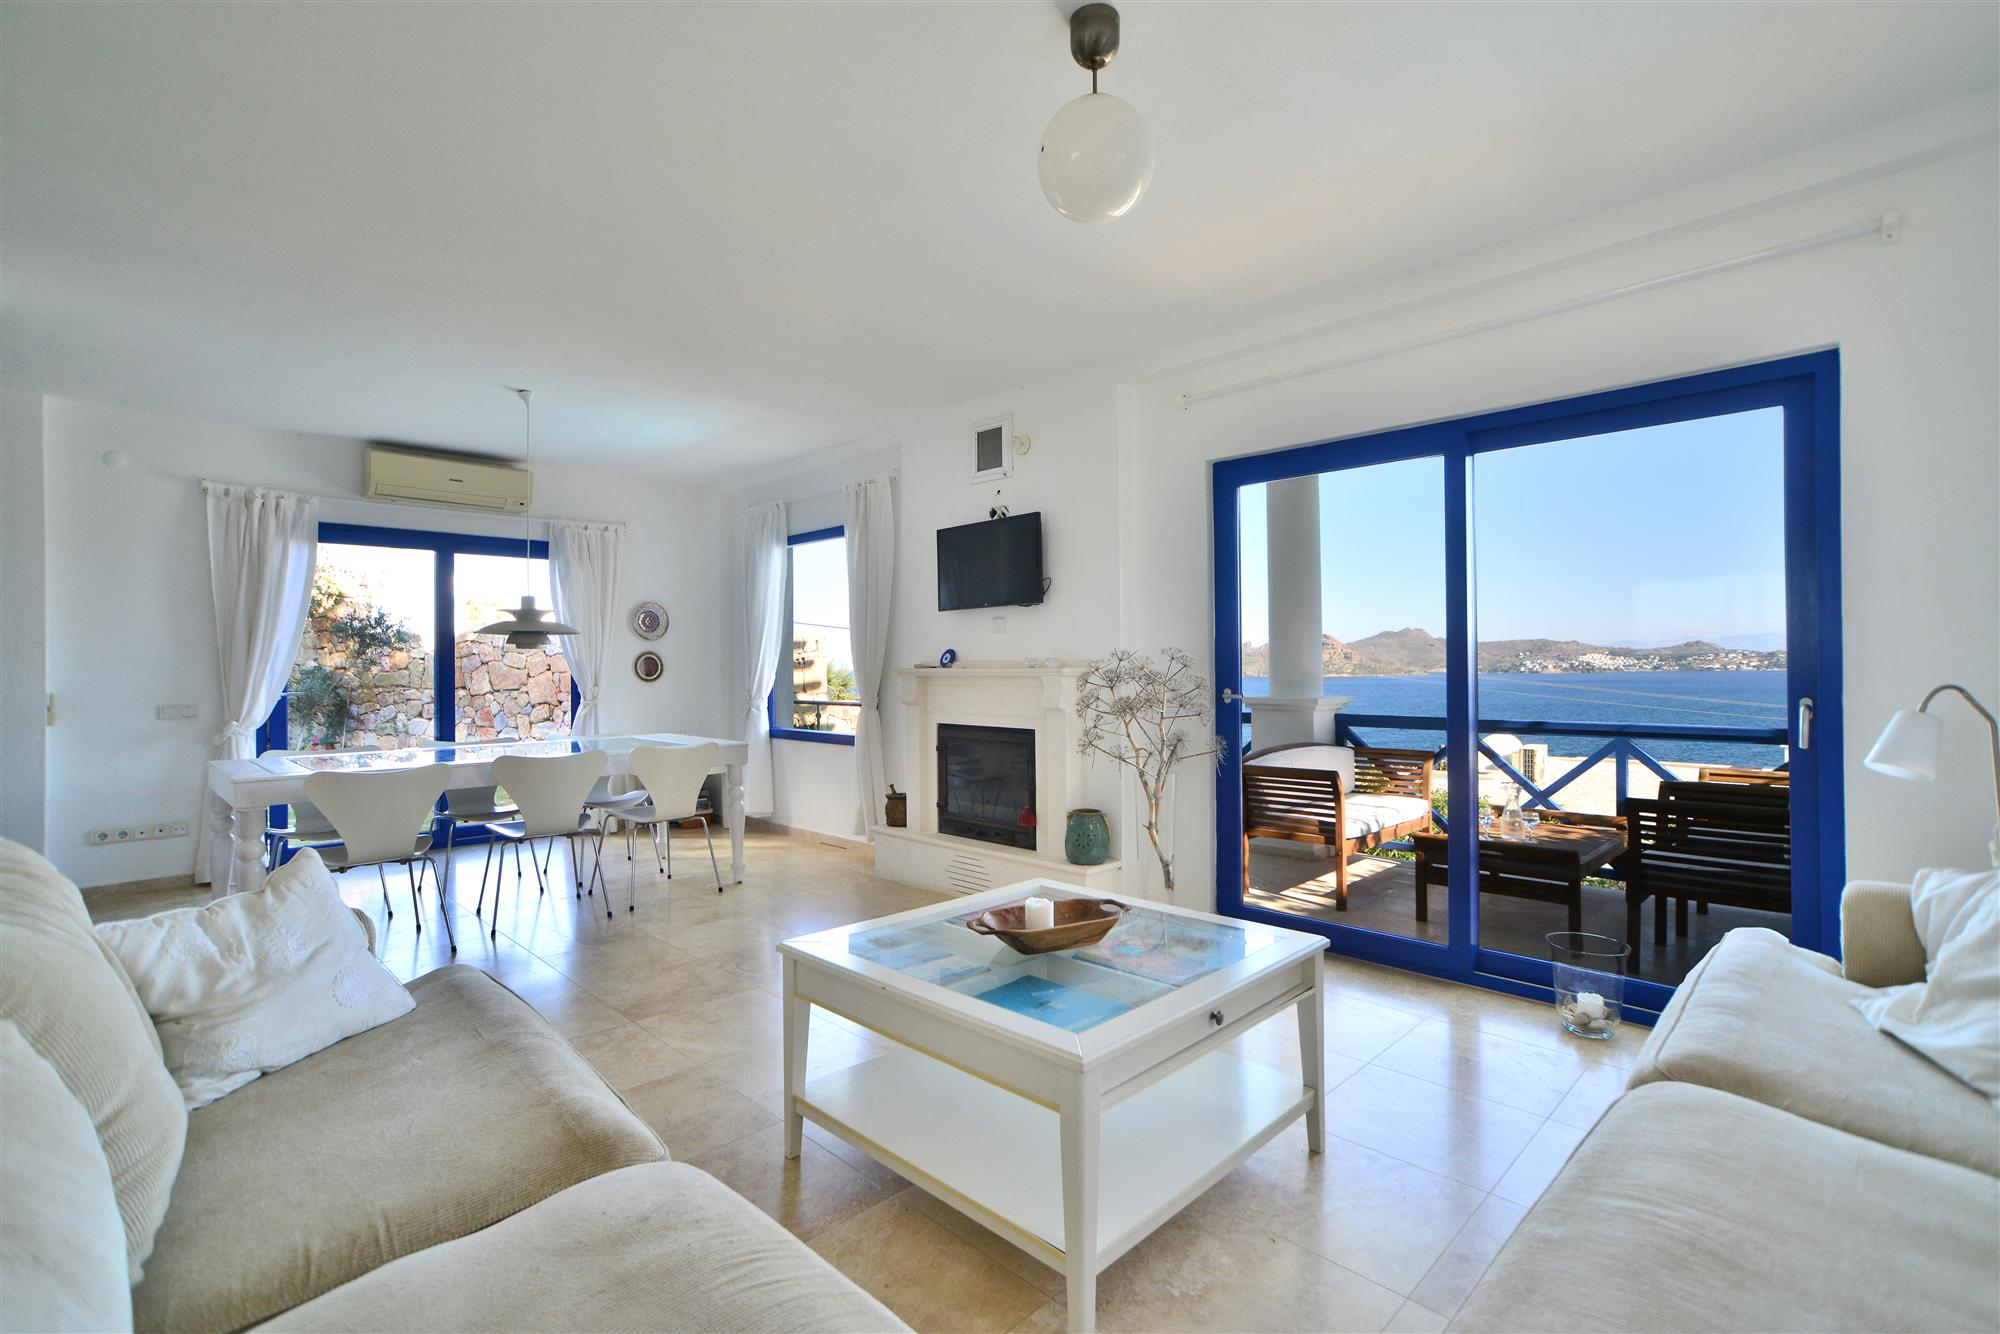 2031-15-Luxury-sea-view-villa-for-sale-Yalikavak